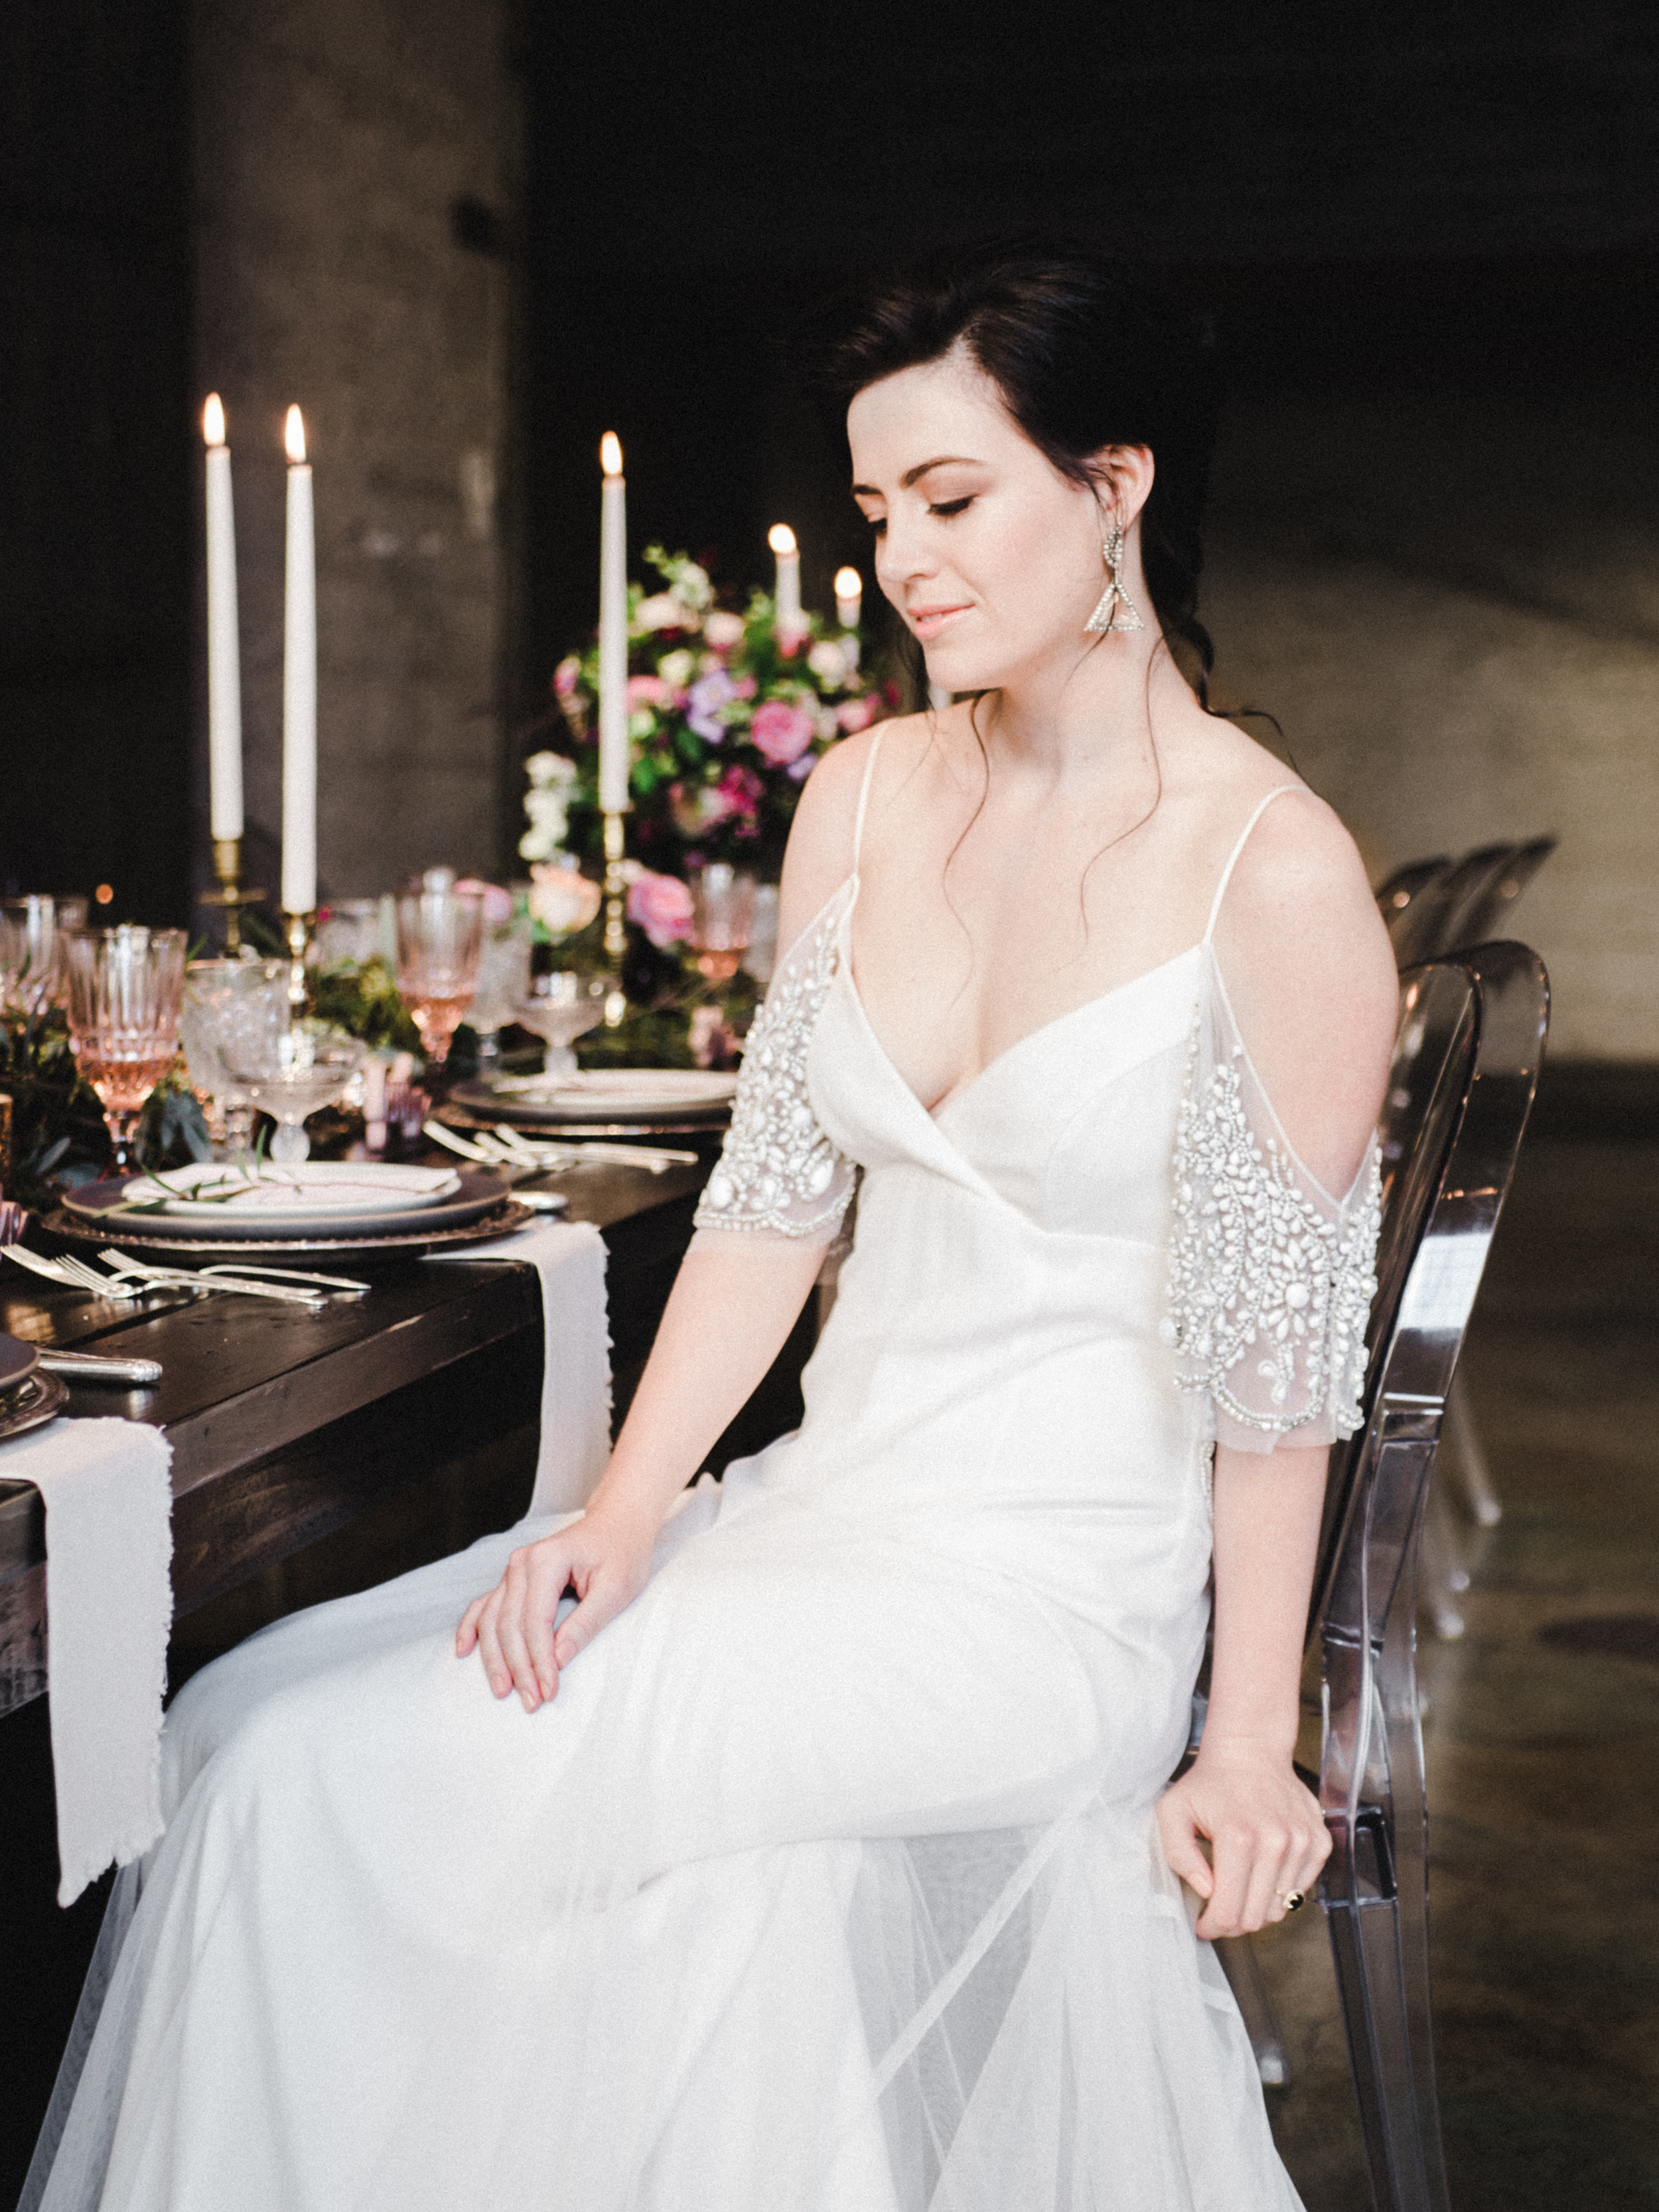 Ethereal and Romantic Styled Shoot at Luce Loft | Photography By Meghan Elise | Michelle Garibay Events